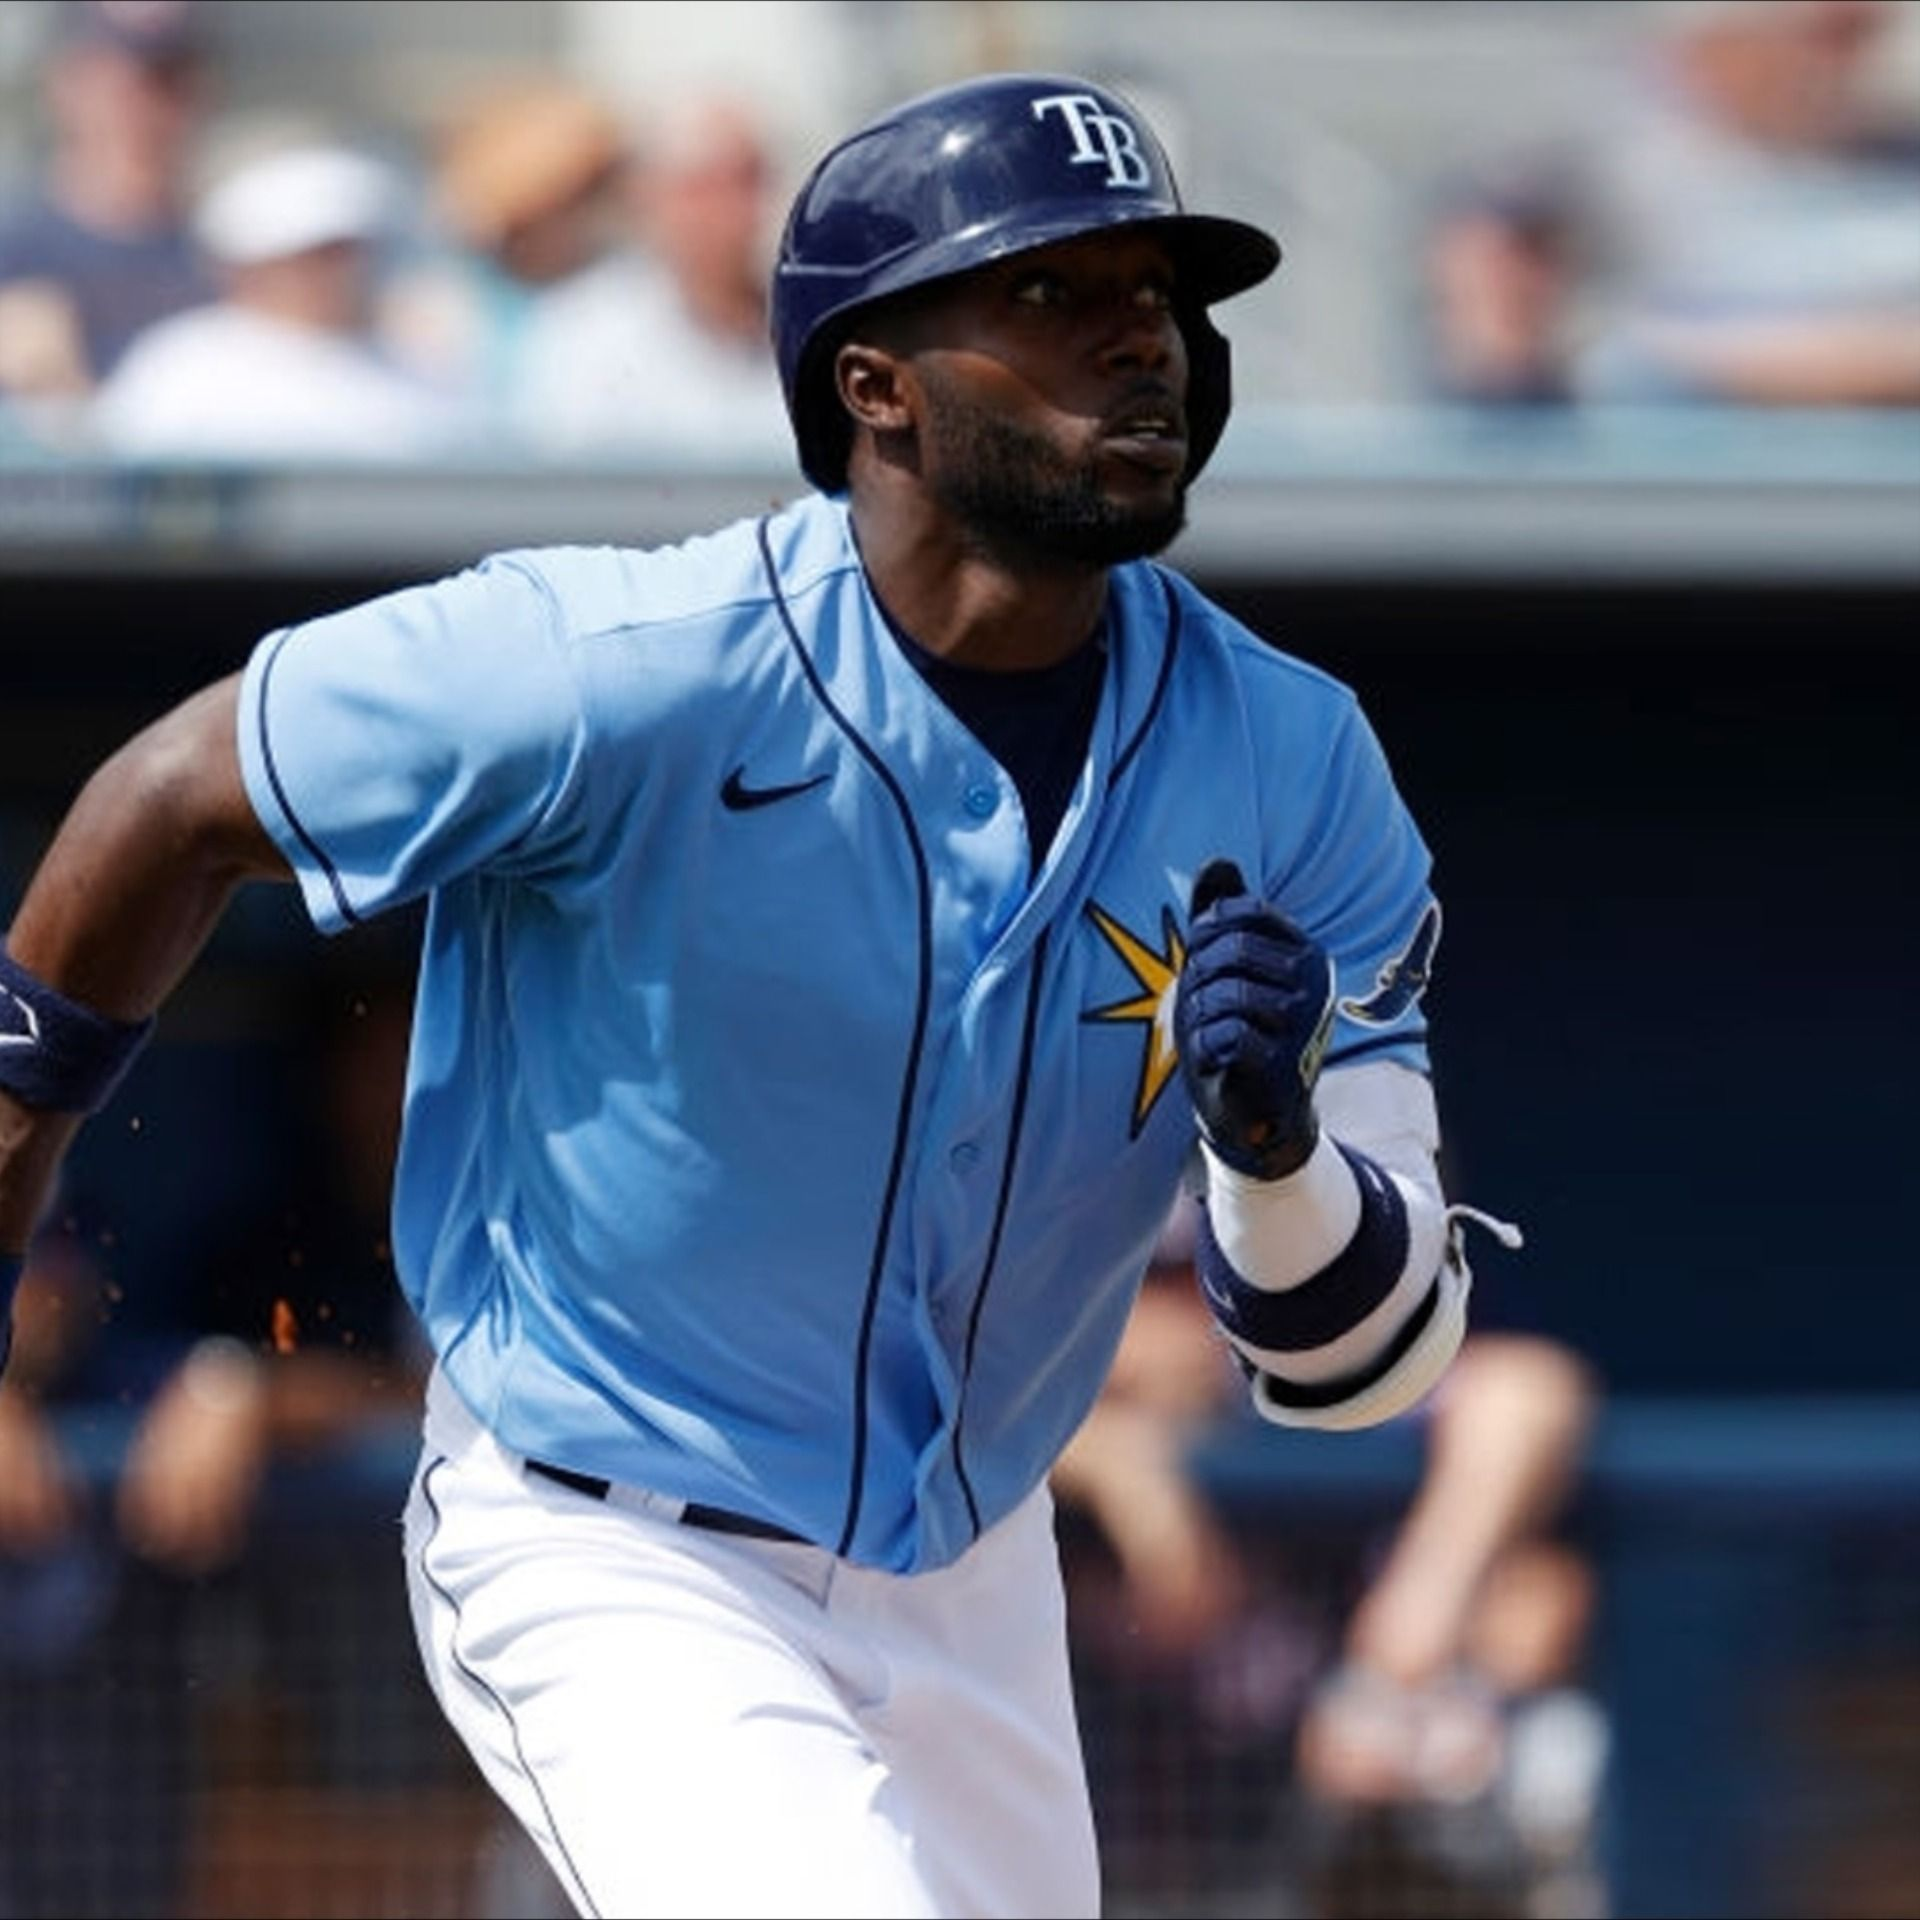 randy arozarena outfielder tampa bay rays in 2020 tampa bay rays tampa bay the outfield randy arozarena outfielder tampa bay